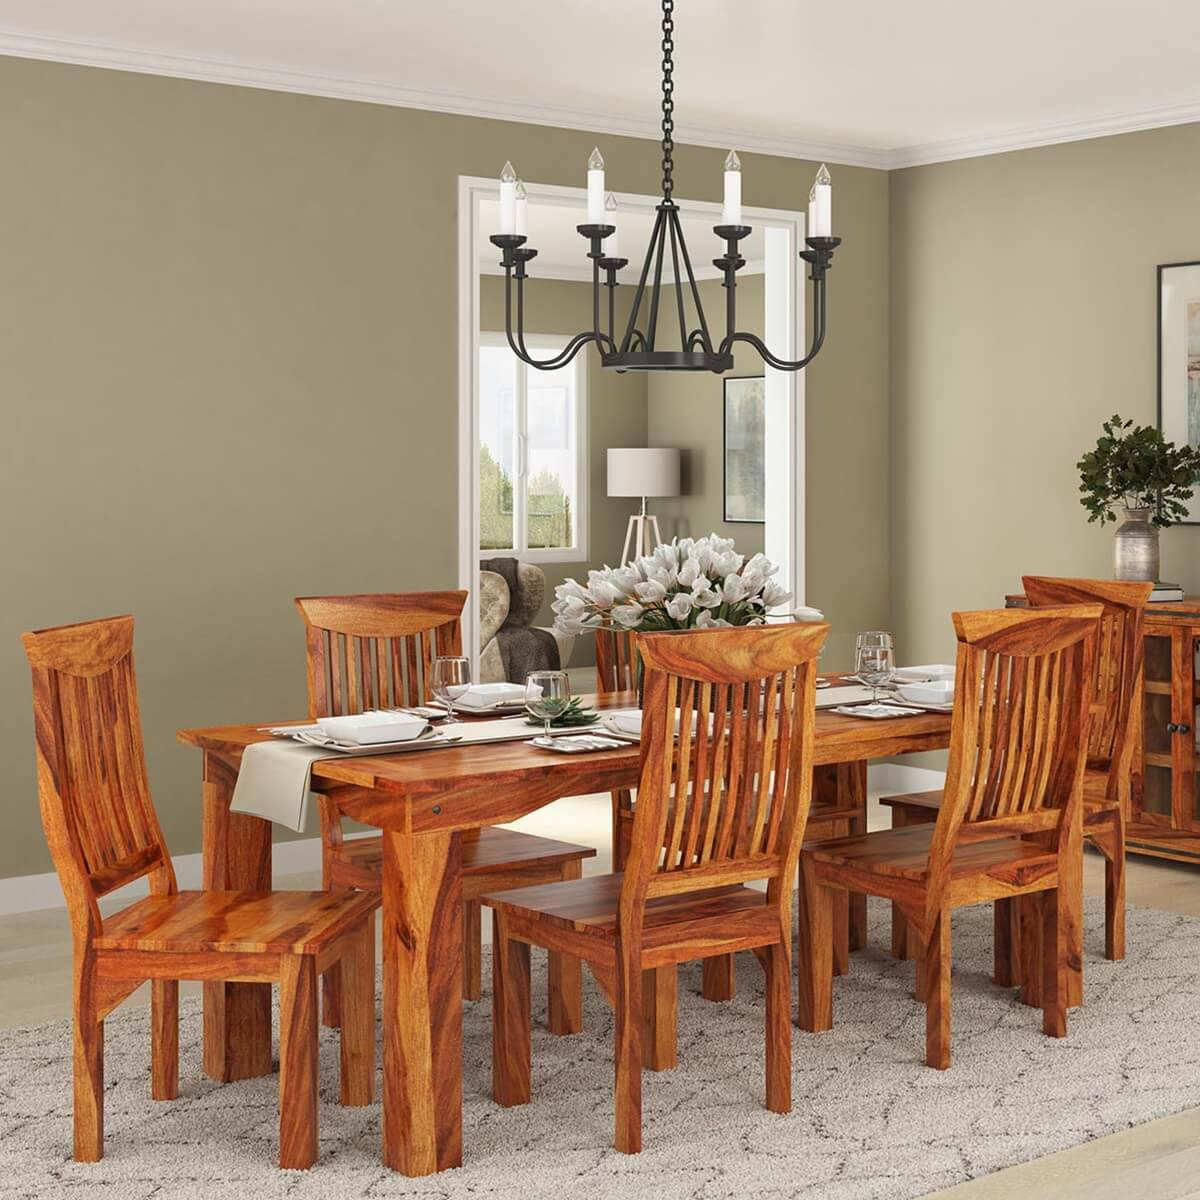 Idaho modern rustic solid wood dining table chair set for Wood dining room furniture